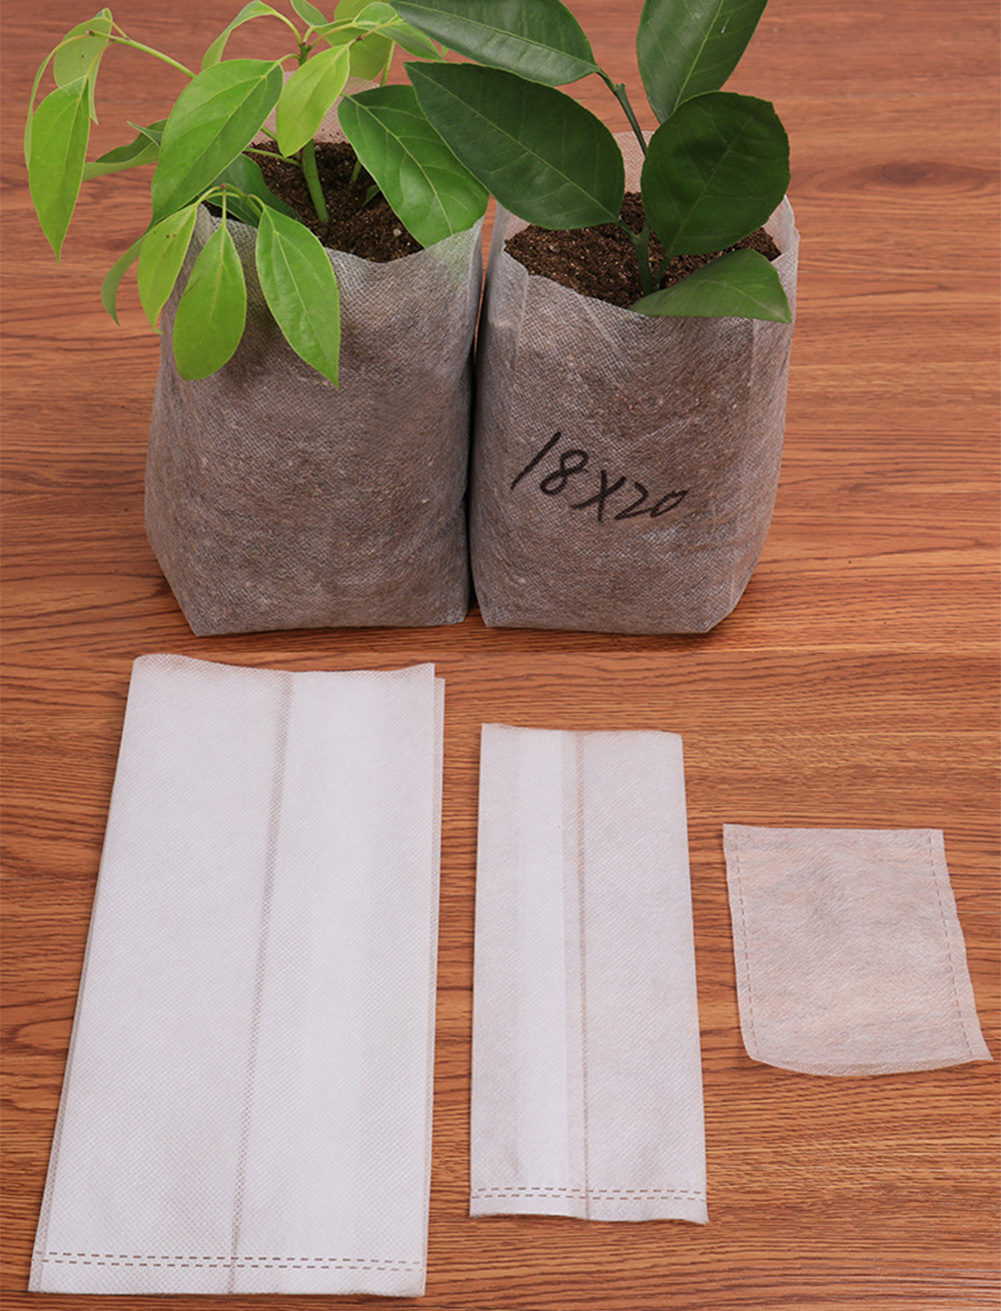 100Pcs Different Sizes Biodegradable Non-woven Nursery Bag Plant Grow Bags Fabric Pouch Seedling Pots Planting Eco-Friendly